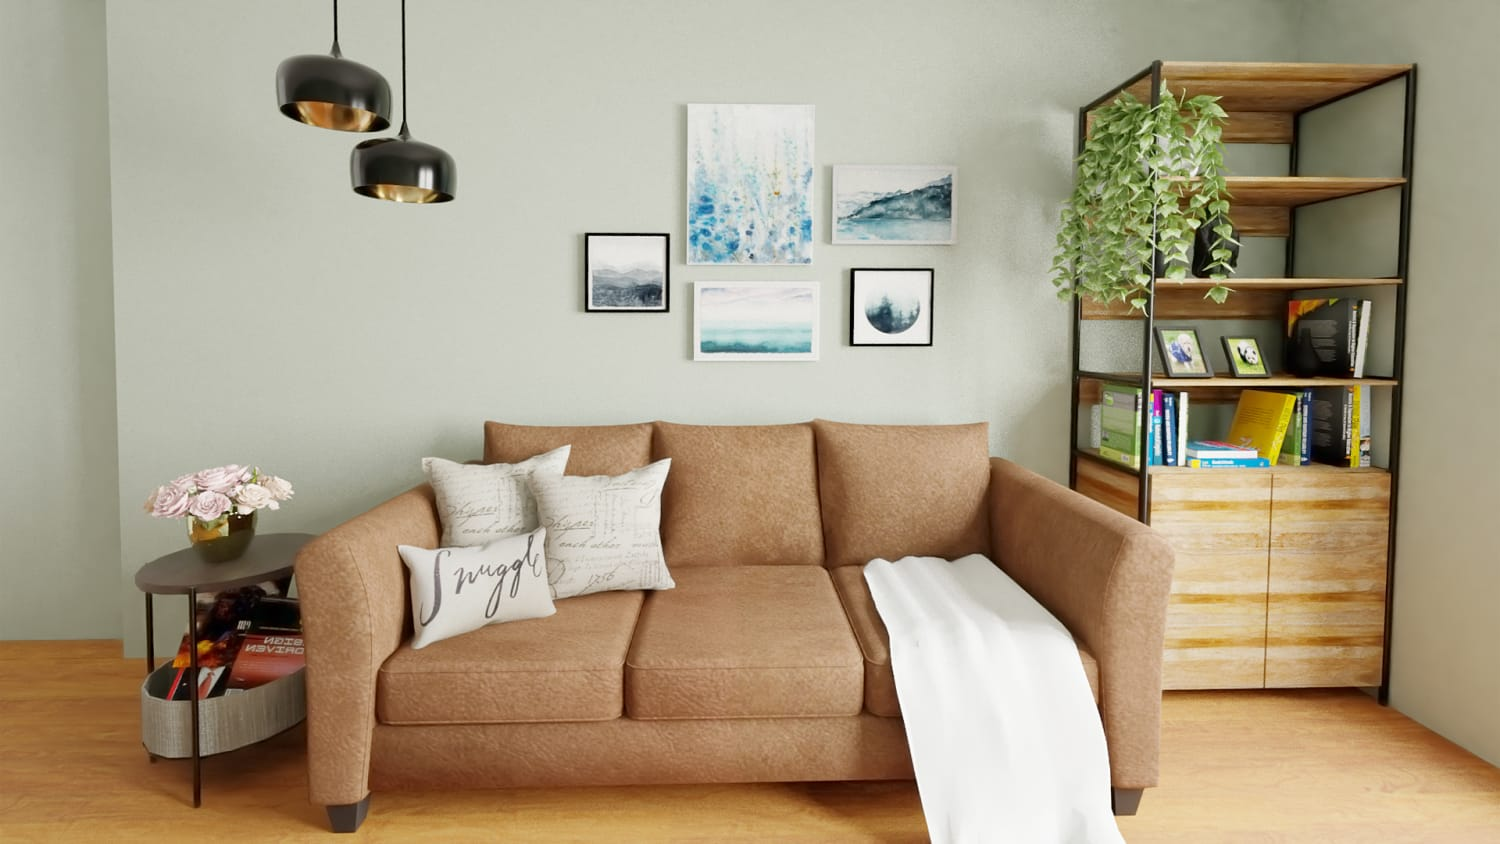 Mastering the Art of Decorating Small Spaces: Urban Farmhouse Living Room Design By Spacejoy